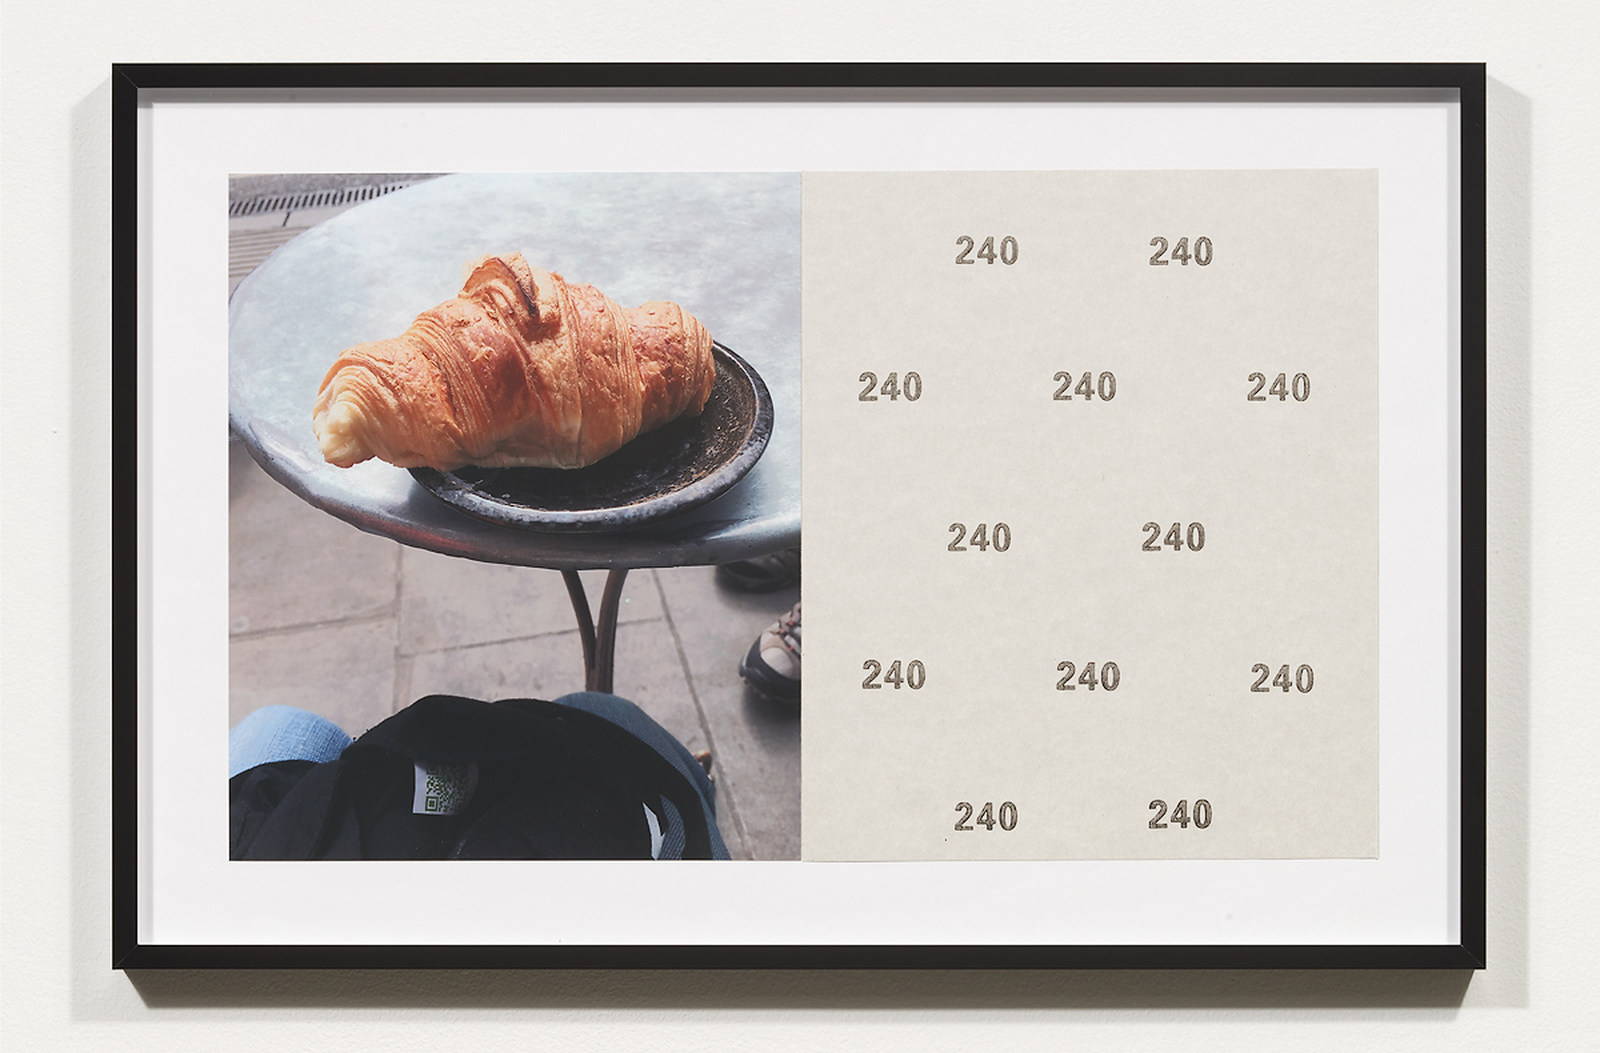 Wermers_Croissants & Architecture #8, 2016_C-print, sandpaper sheet, framed_14 3_8 x 21 1_2 in_NW00049PG